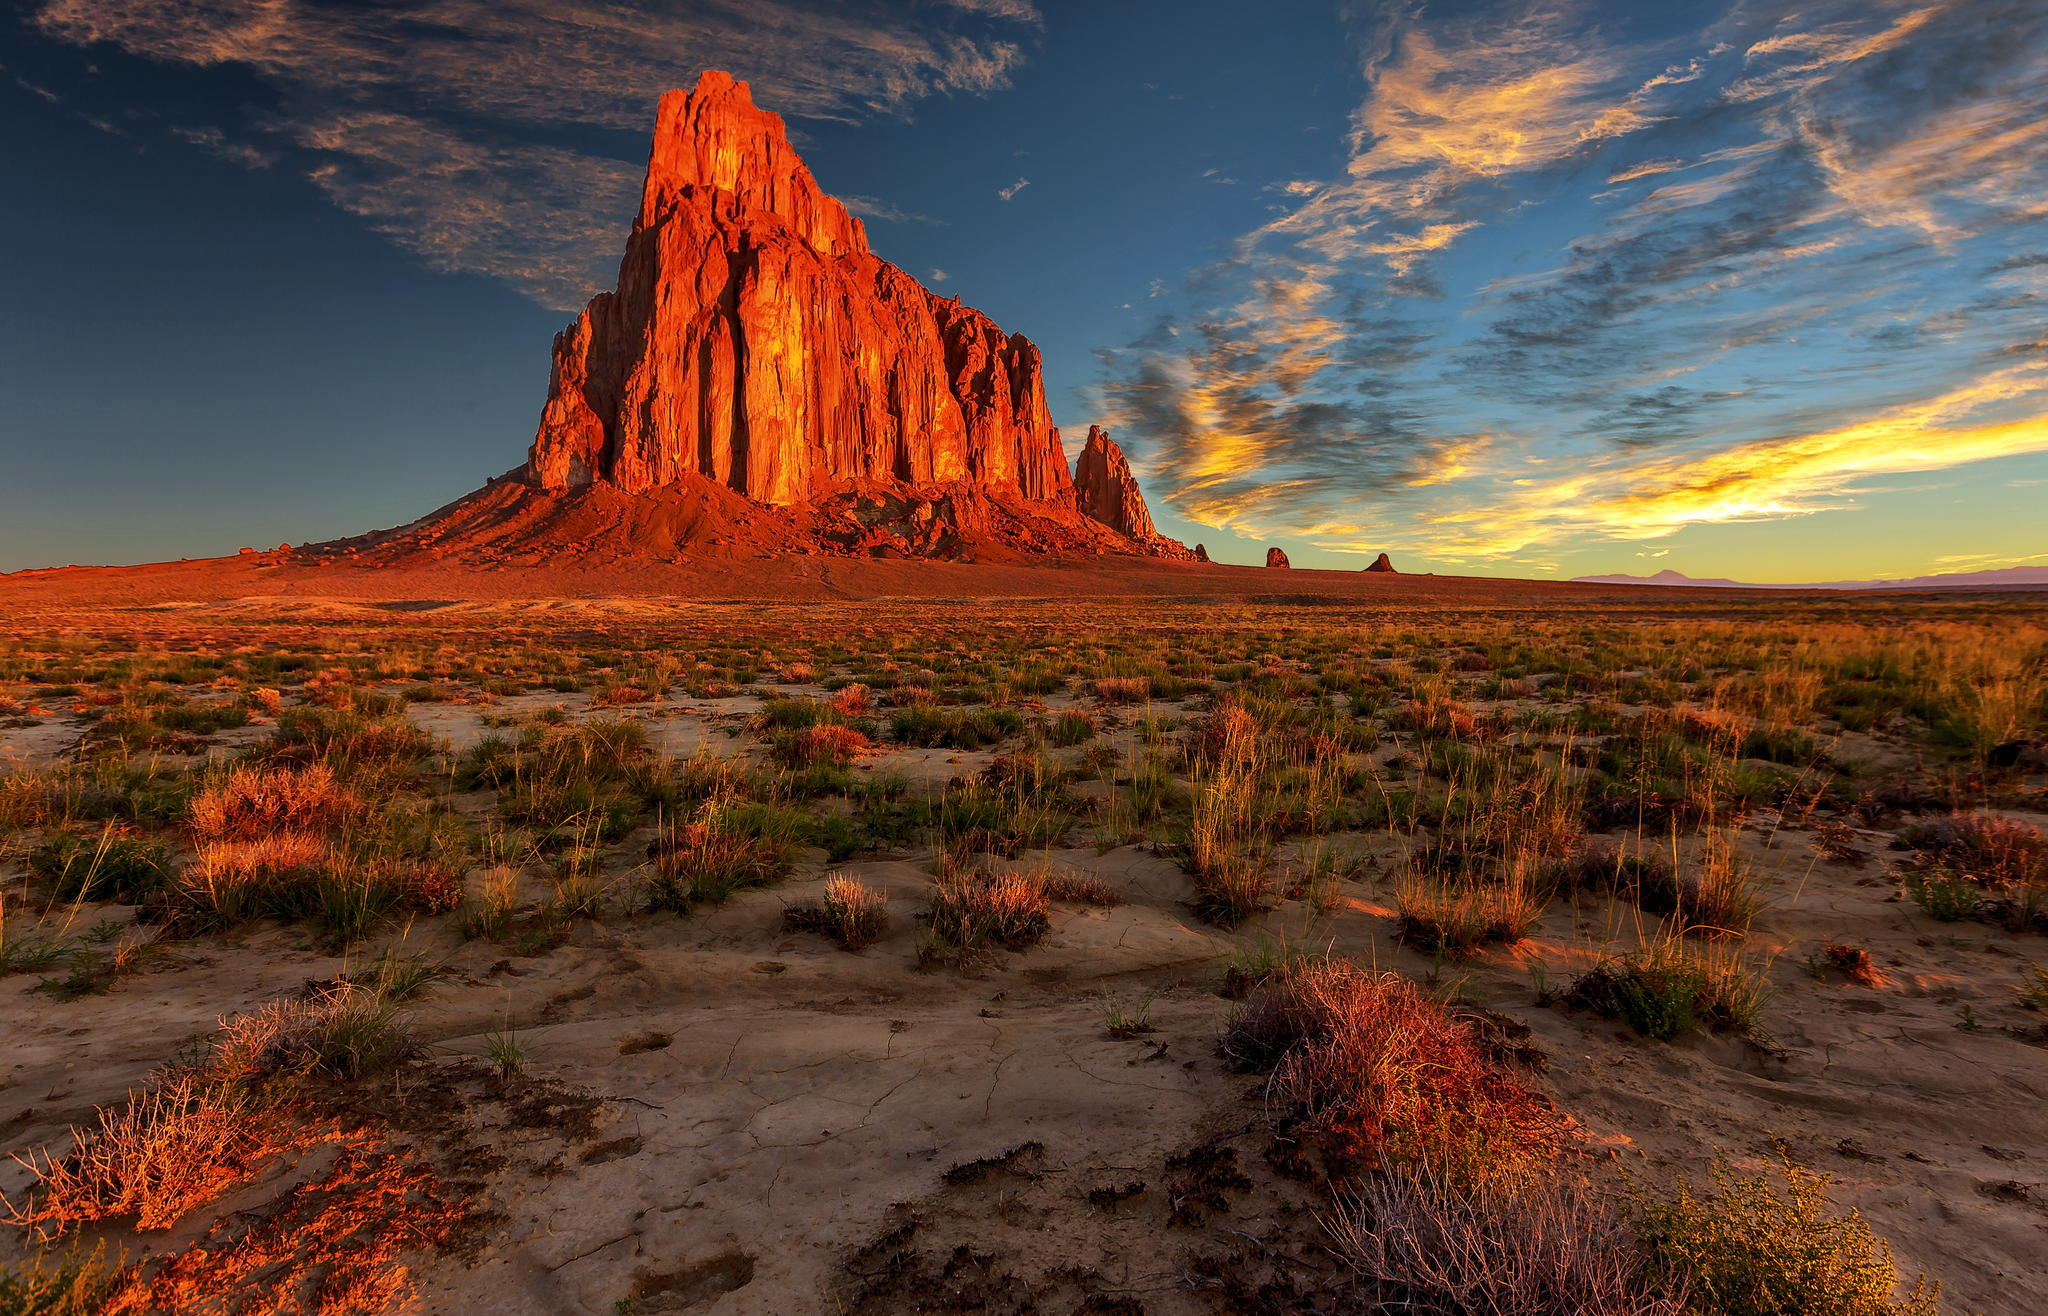 Day 1 – Phoenix, Arizona See the greatest national parks of America's Southwest! Spend four nights in national park lodges, including two nights at the South Rim of the Grand Canyon and two nights at Zion Park Lodge, the only lodging in Zion National Park.